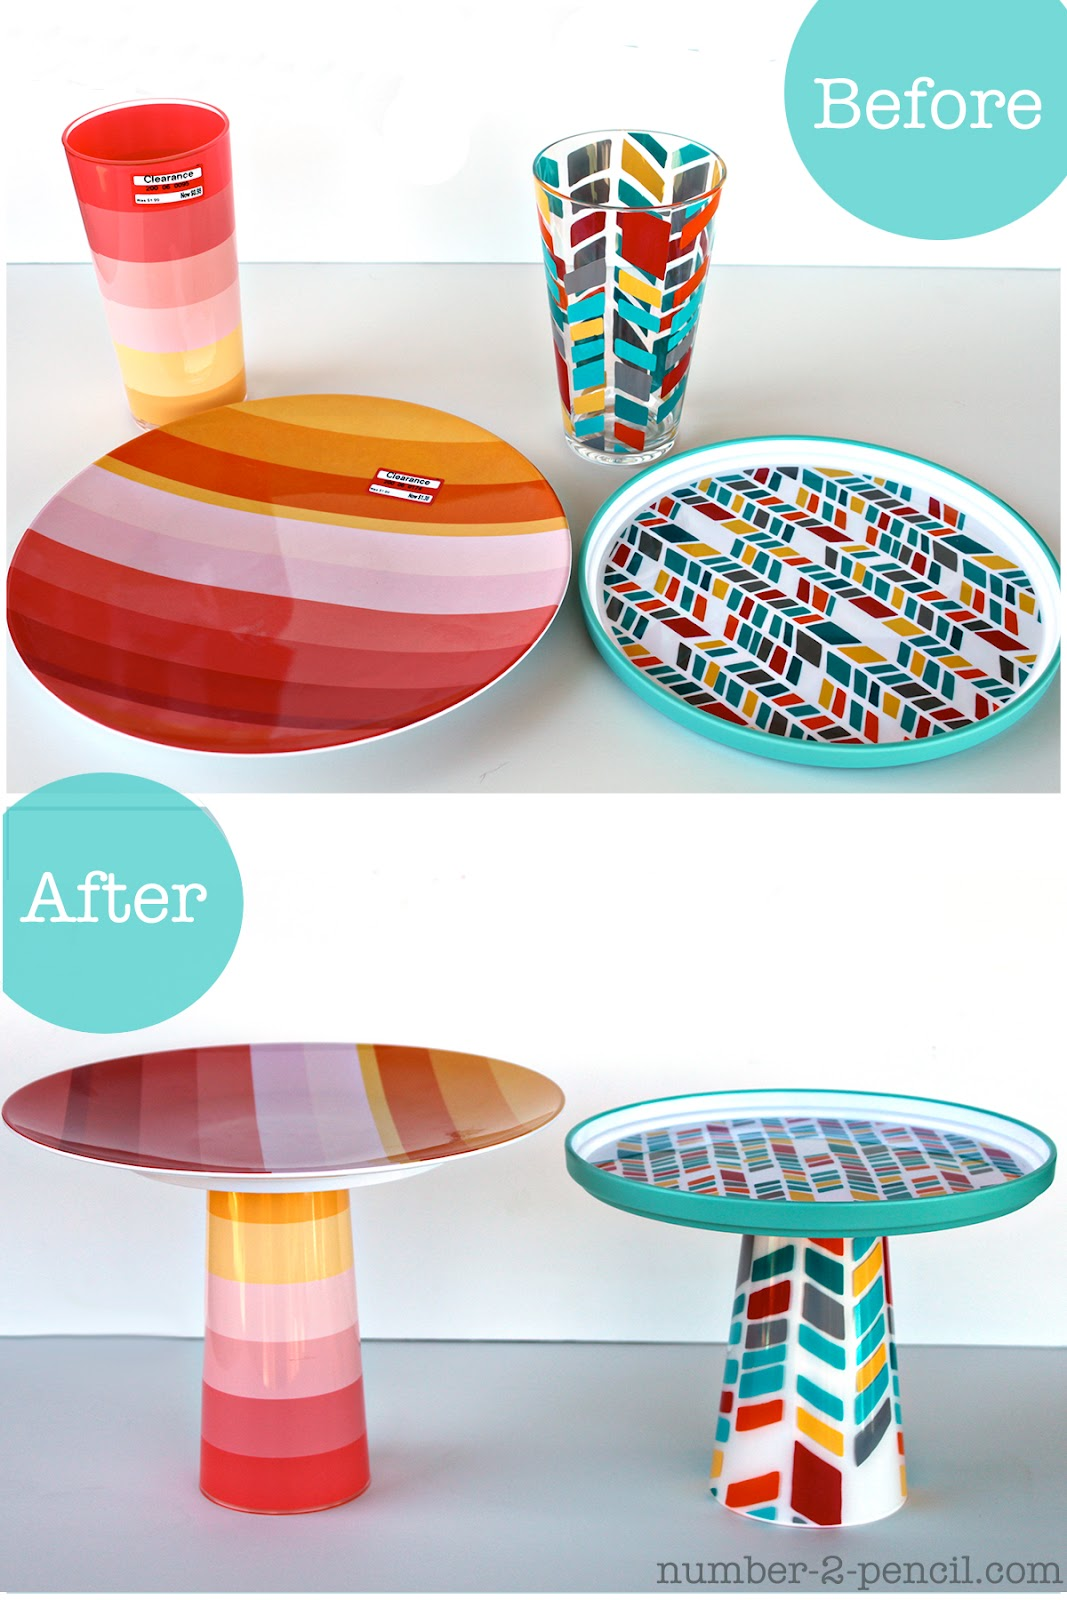 diy cake stands no 2 pencil. Black Bedroom Furniture Sets. Home Design Ideas